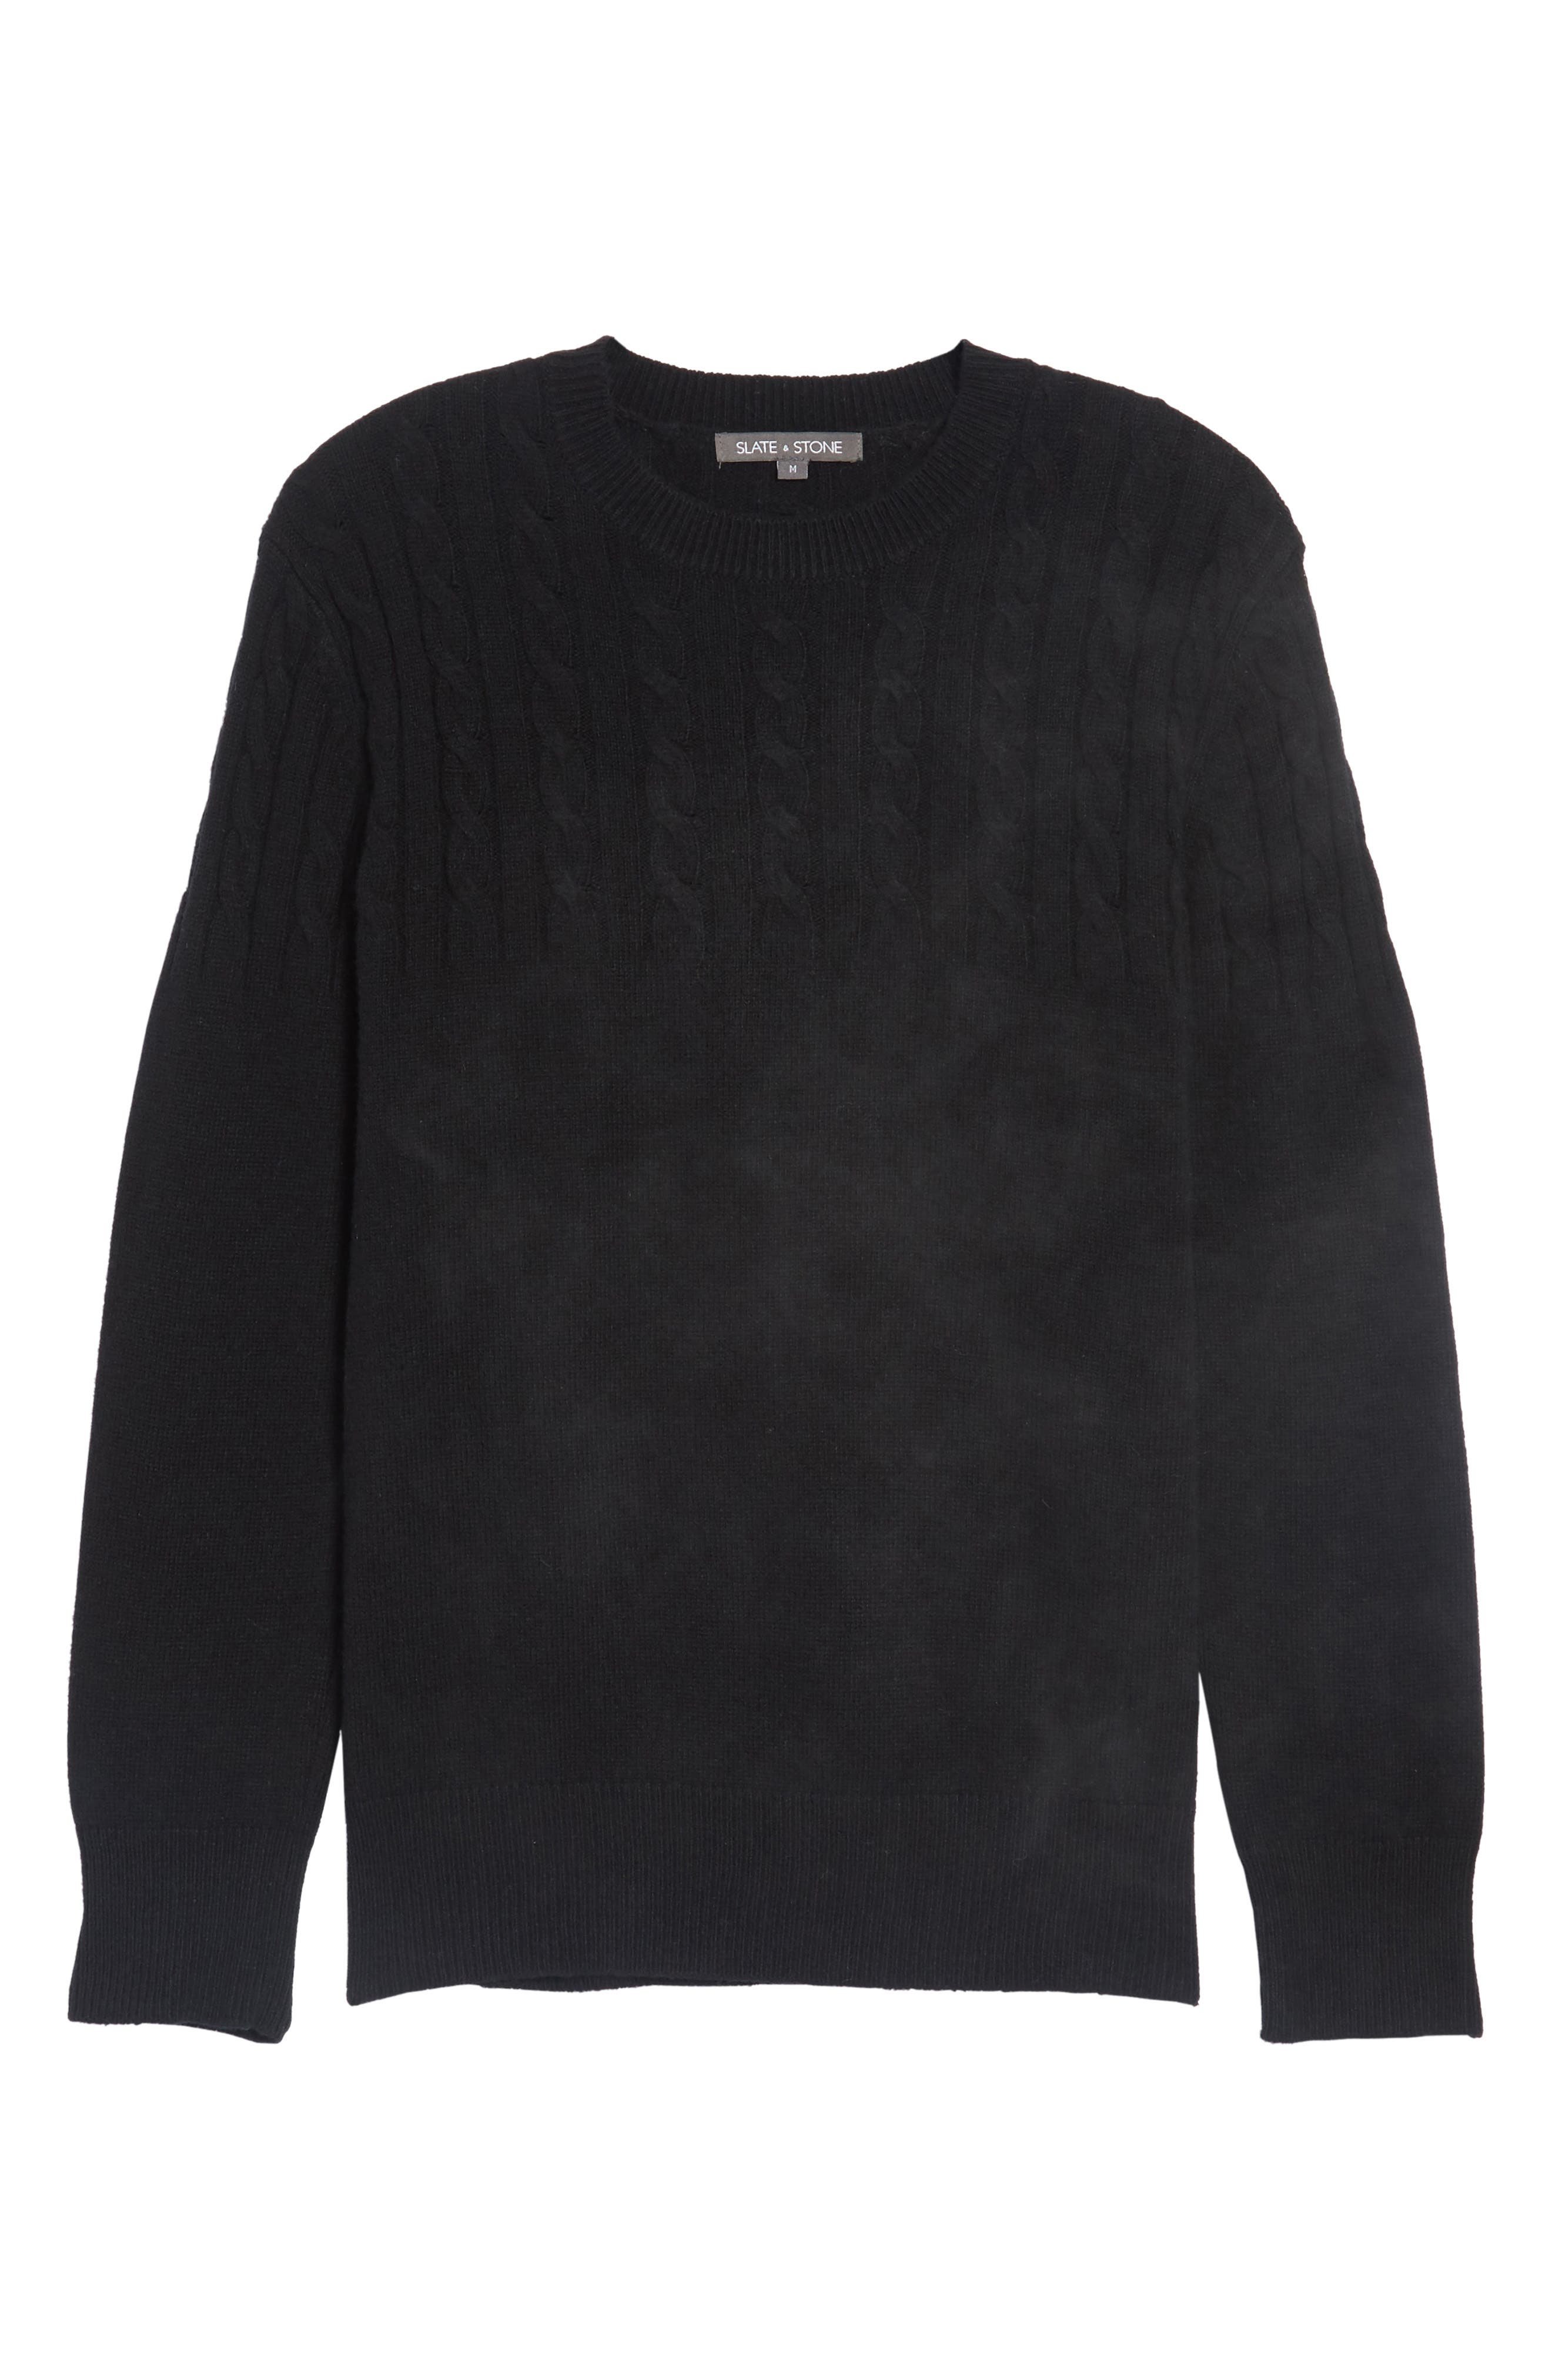 Wool Cable Knit Sweater,                             Alternate thumbnail 6, color,                             001